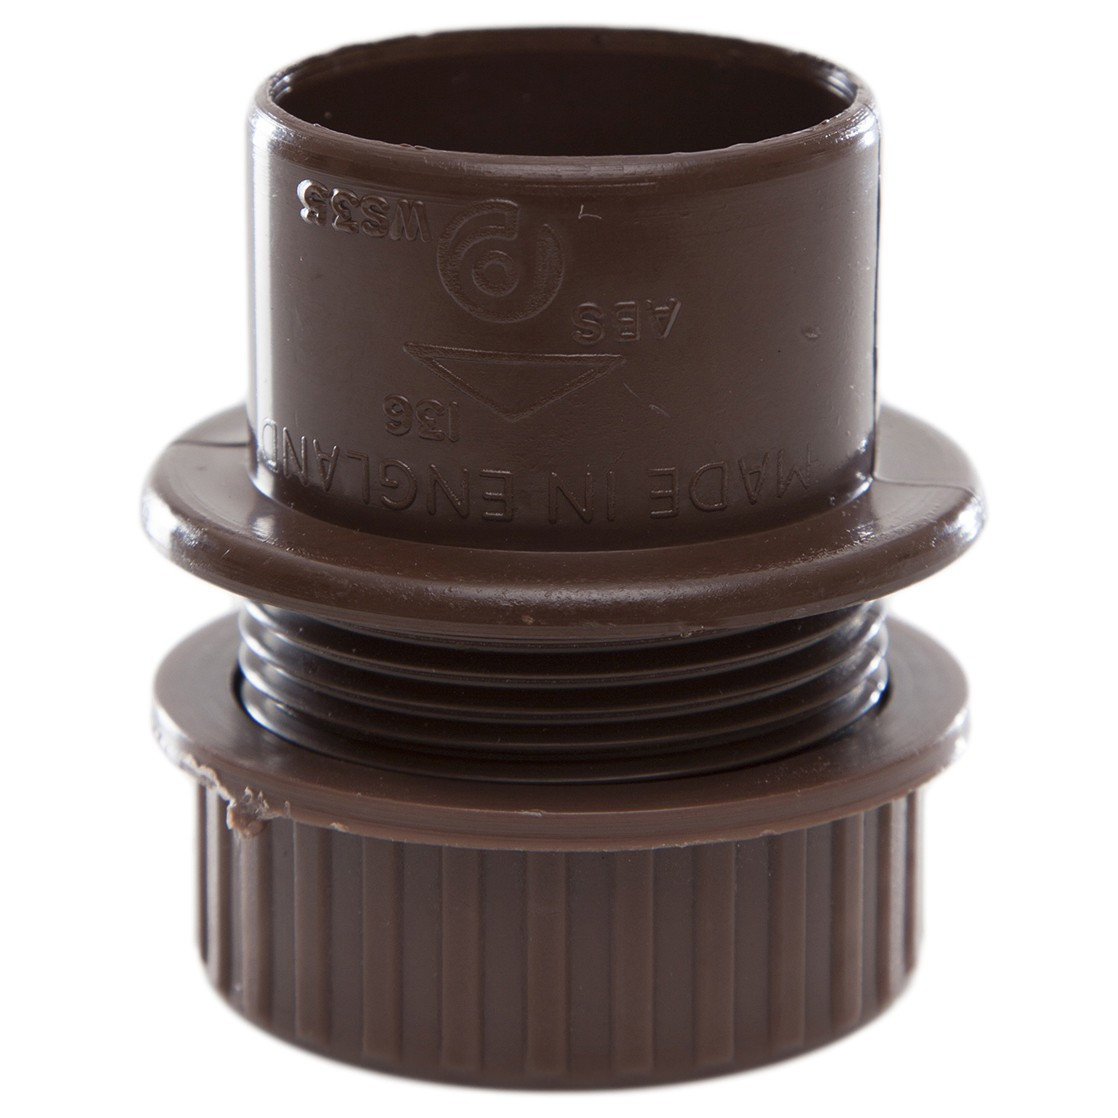 Polypipe 40mm Solvent Weld Waste Tank Connector - Brown